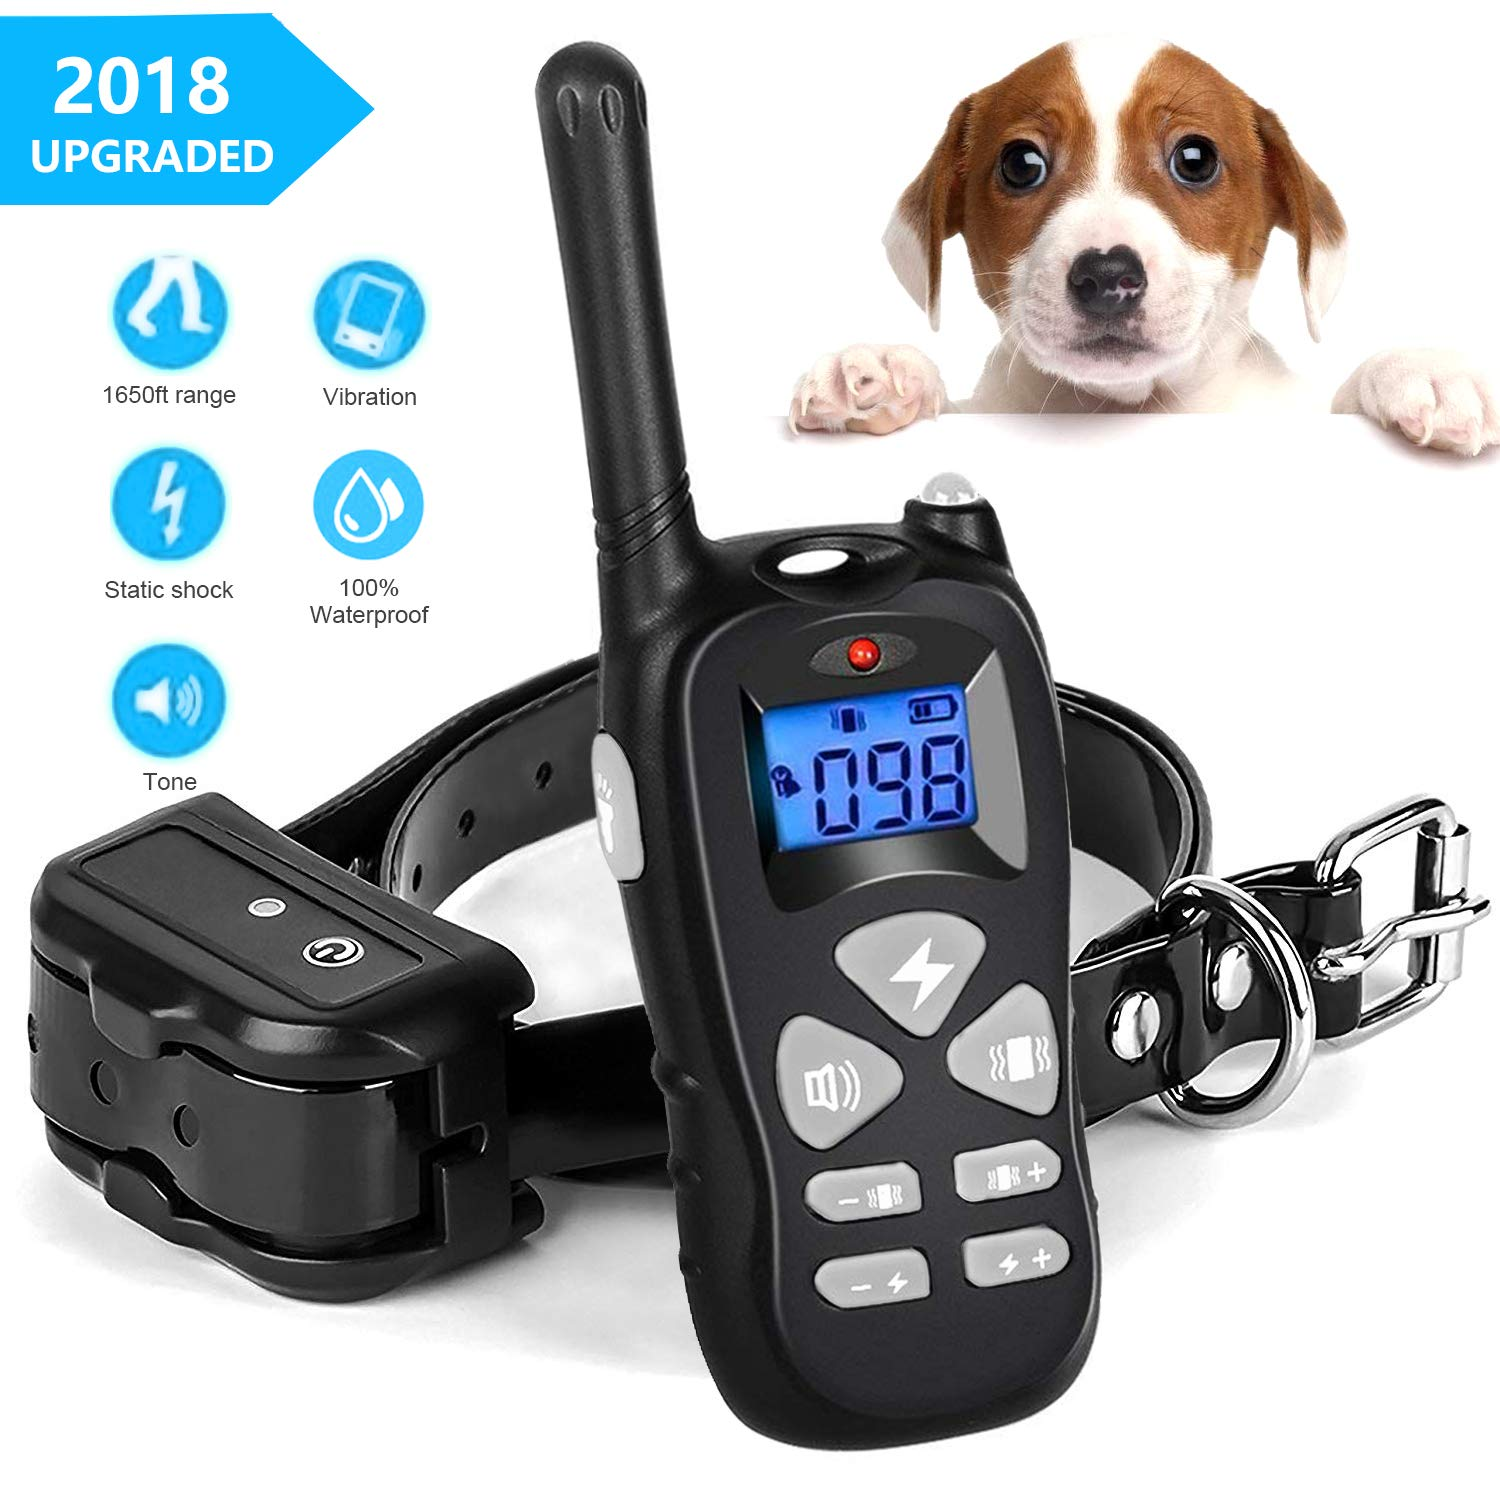 YISENCE Dog Training Collar, Rechargeable and Waterproof Shock Collar for Large Dogs and Small Dogs, 3 Training Modes Beep 1-99 Levels Vibration and Shock Collar for Dogs (DTC3)